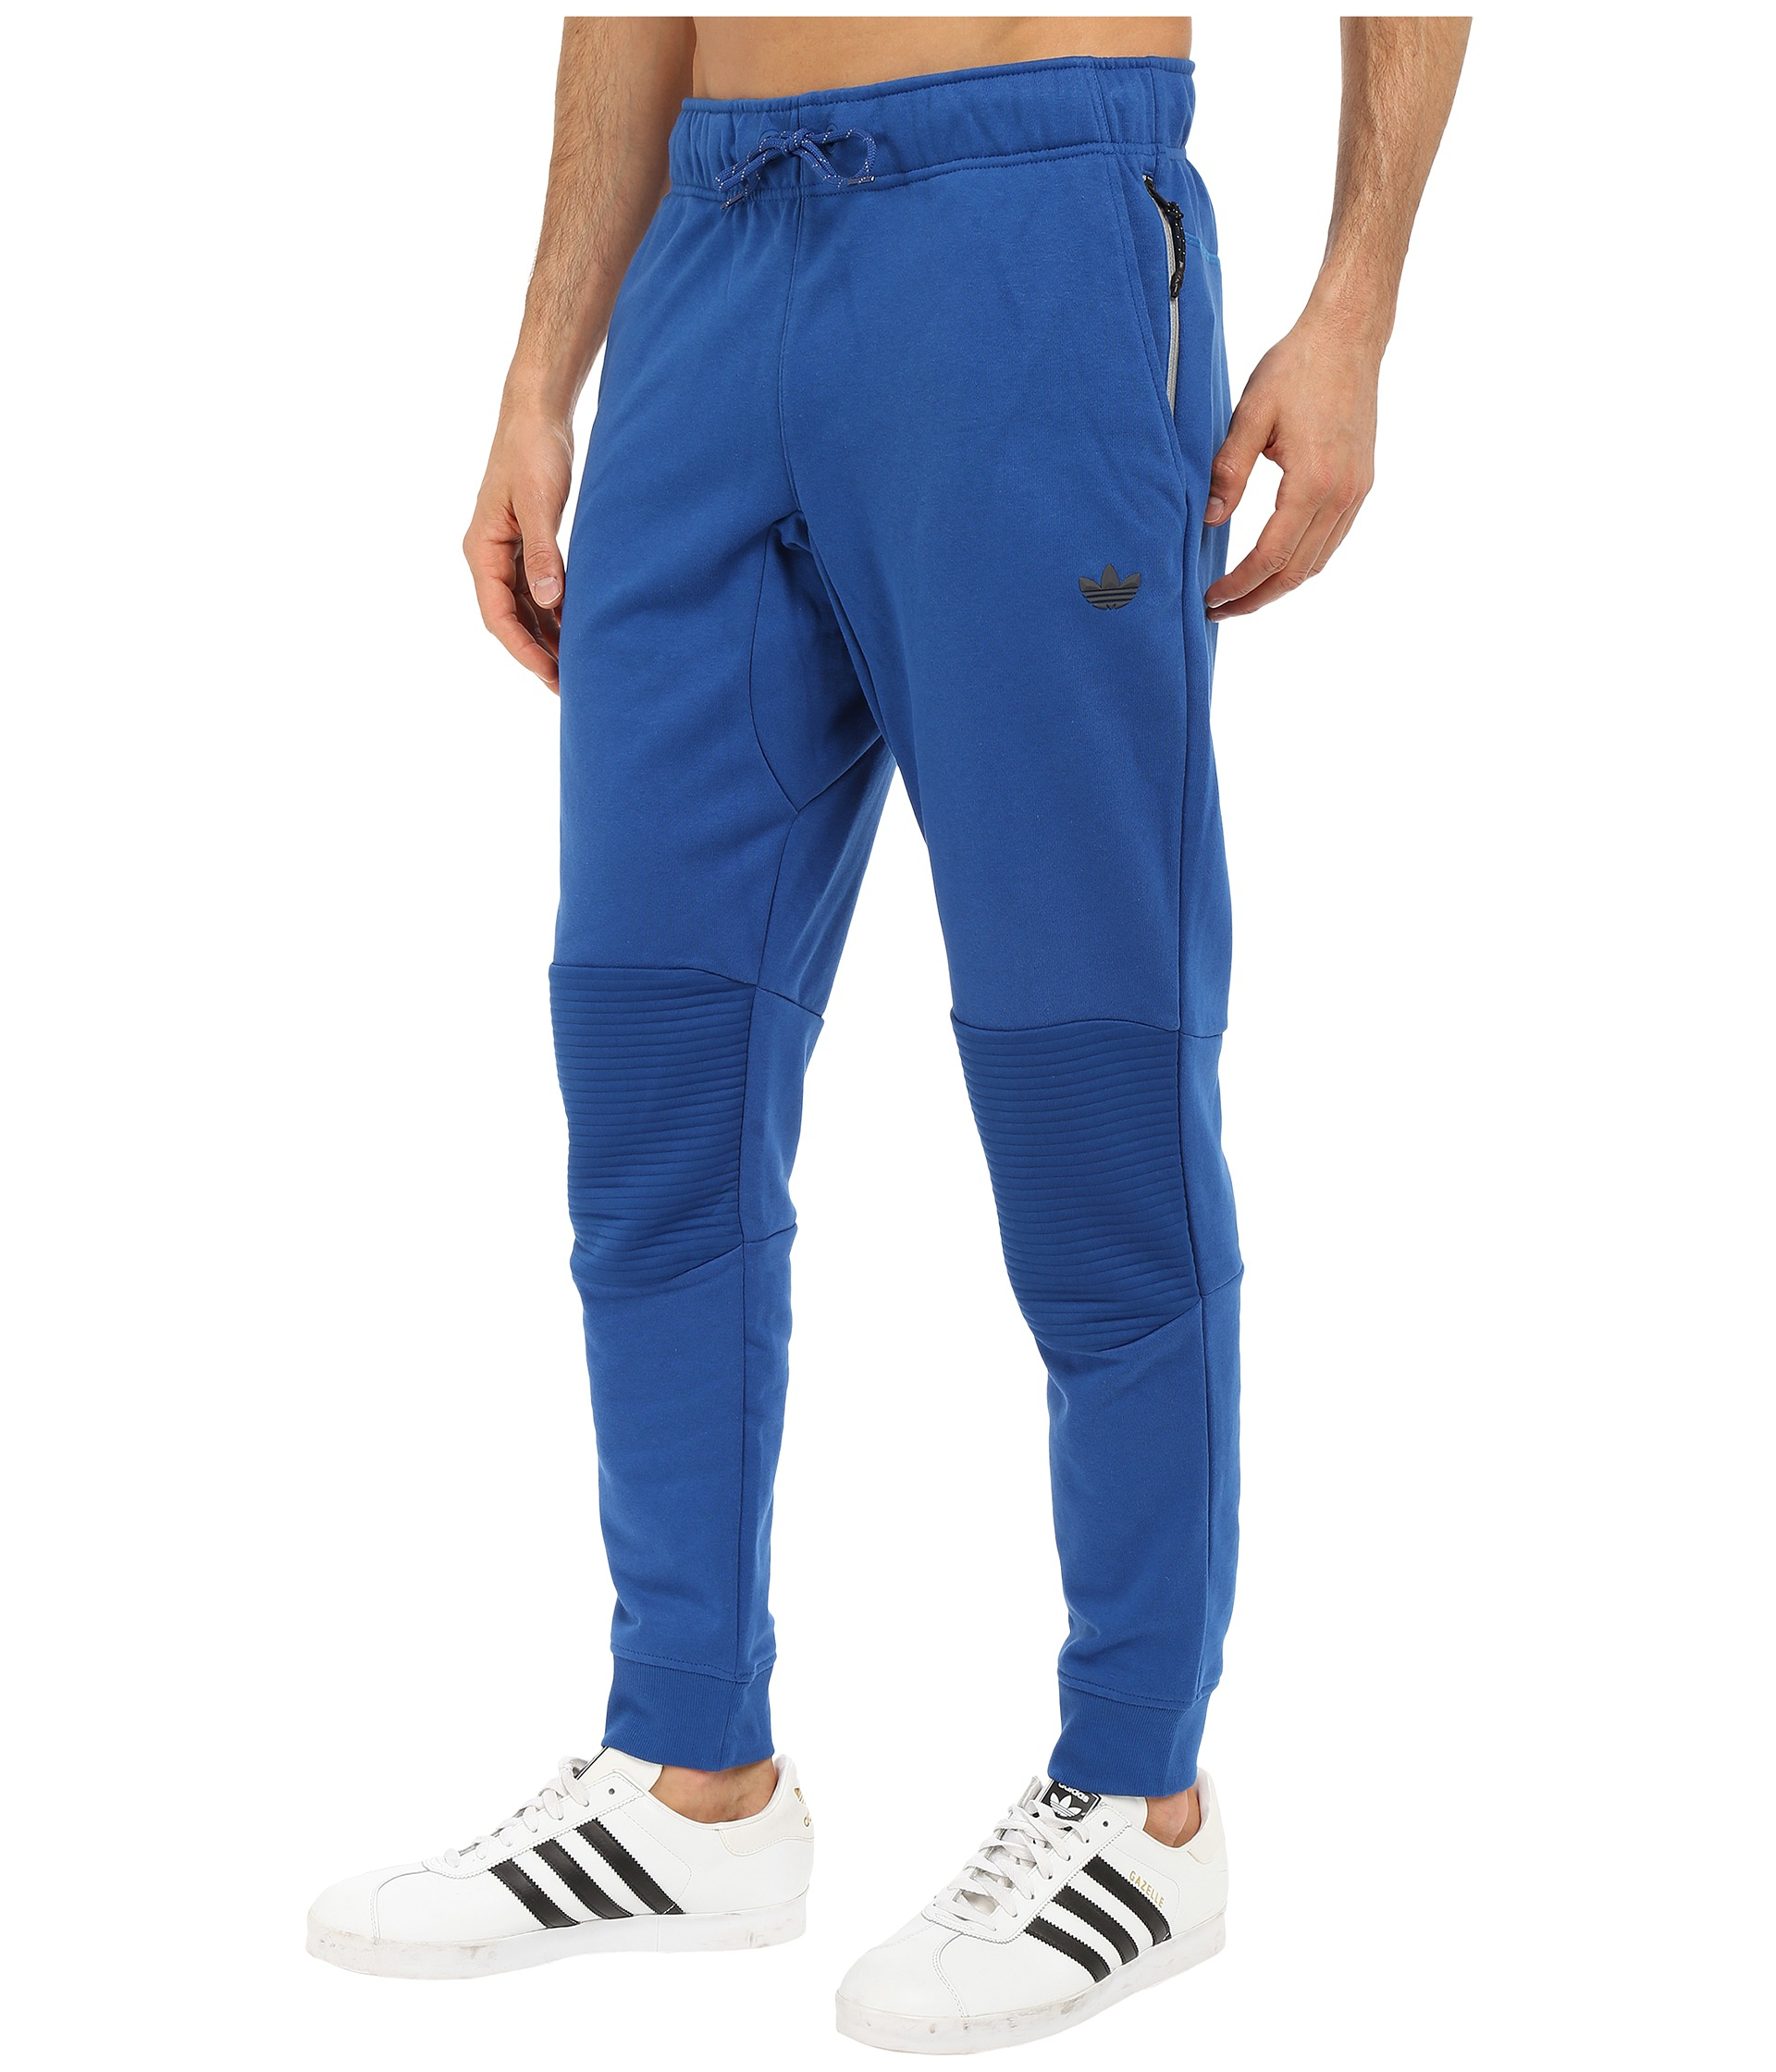 f28bd05f9 adidas Originals Sport Luxe Moto Jogger Pants in Blue for Men - Lyst